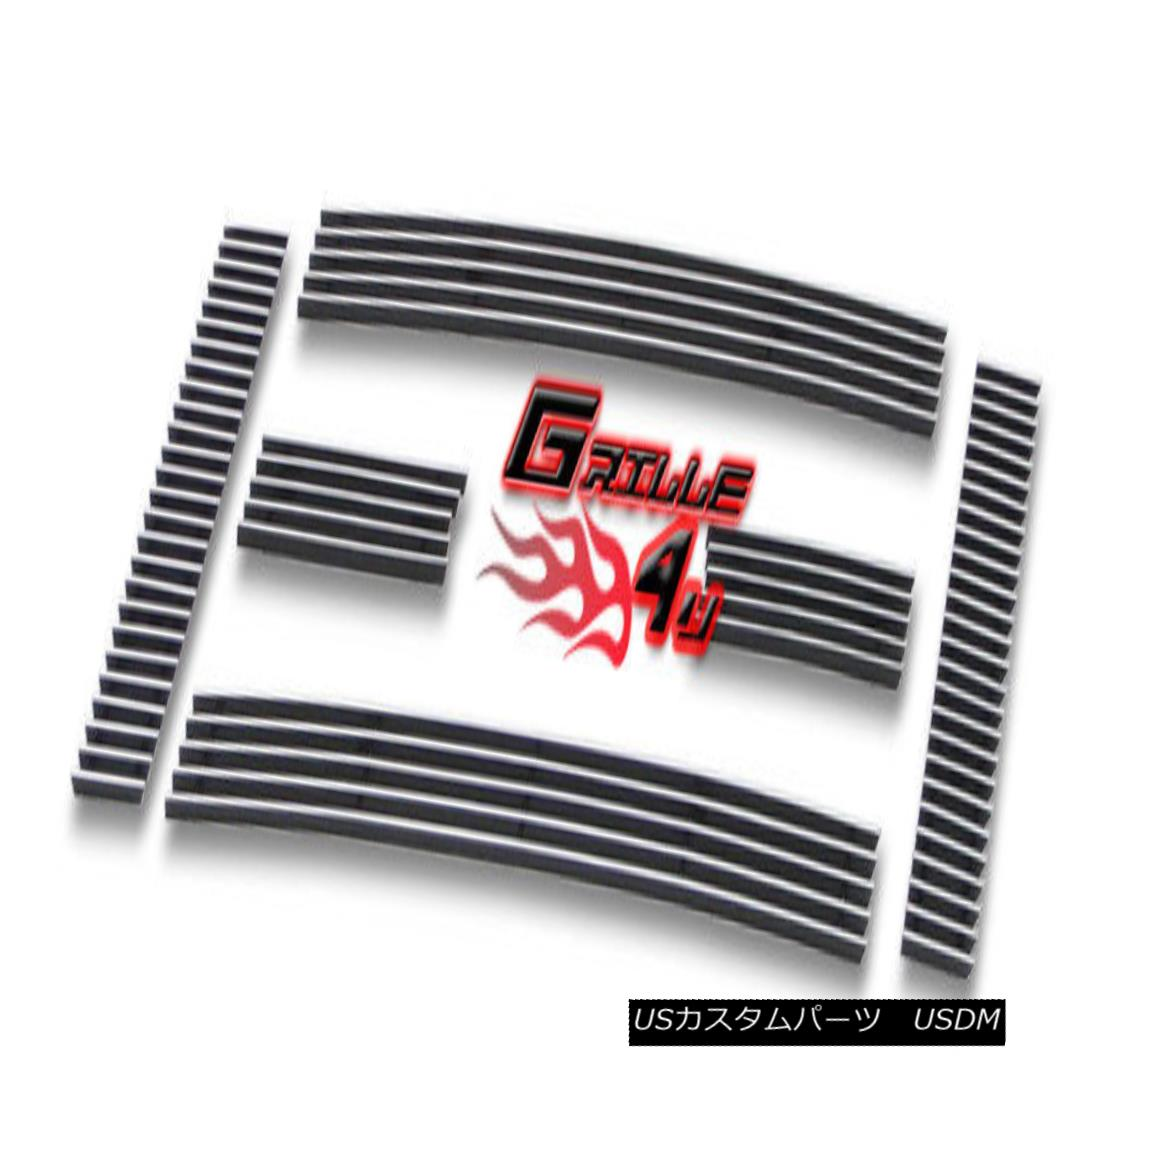 グリル For 08-11 2011 Ford Econoline Van/E-Series Billet Premium Grille 08-11 2011 For Ford Econoline Van / Eシリーズビレットプレミアムグリル